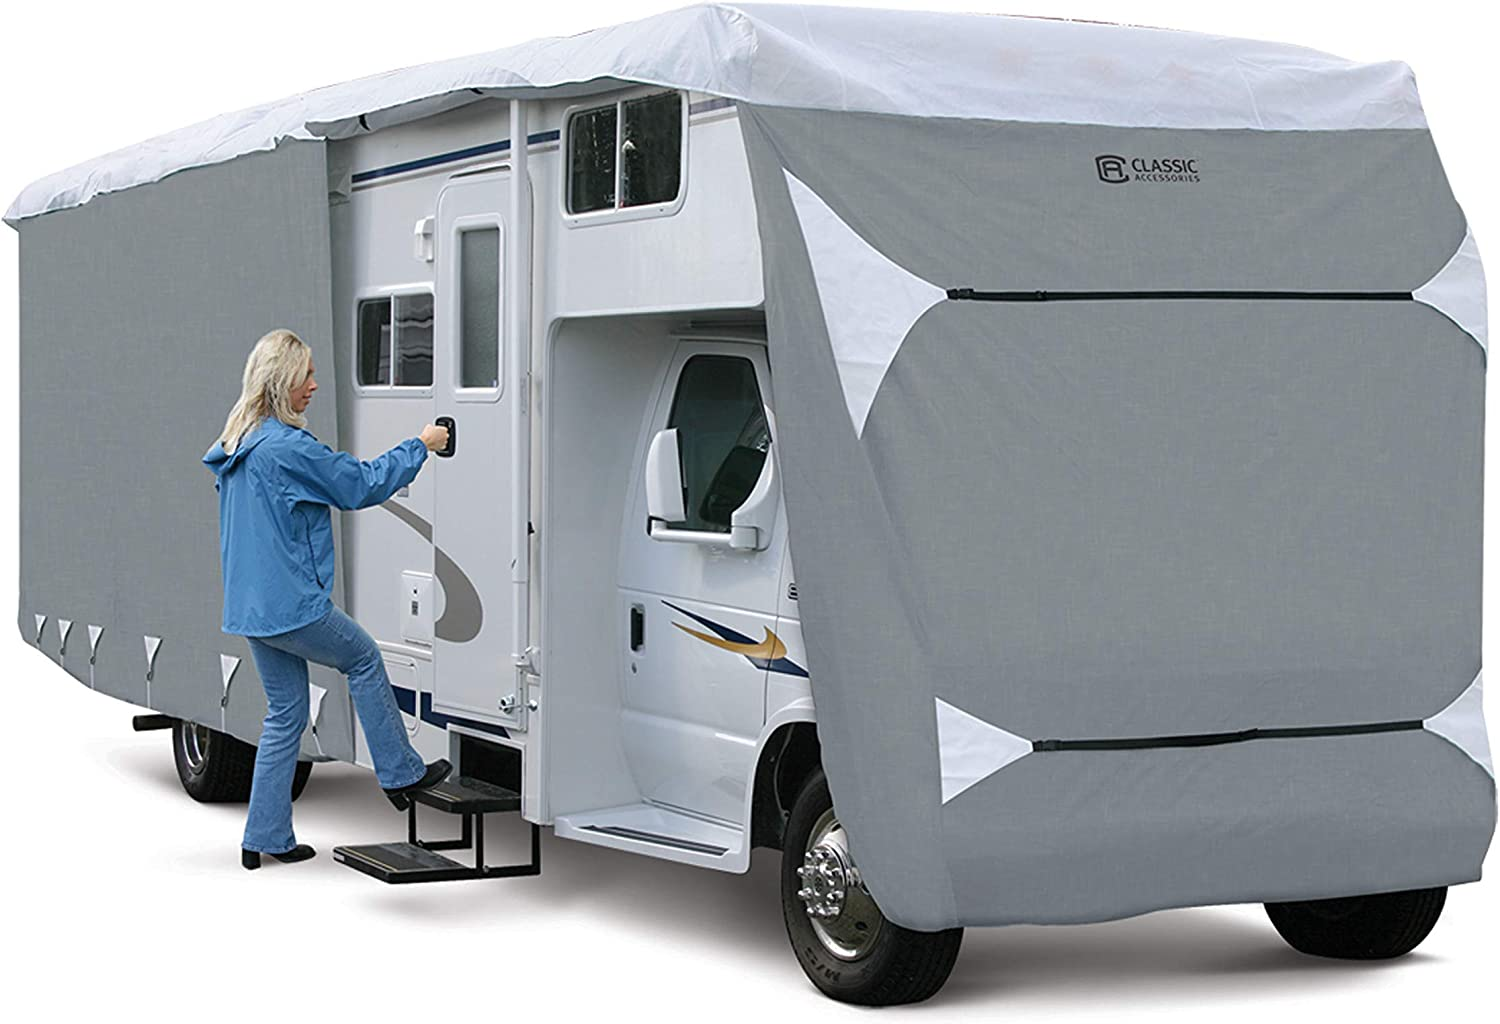 Renewed Classic Accessories OverDrive PolyPro 3 Deluxe Class C RV Cover Fits 32-35 RVs